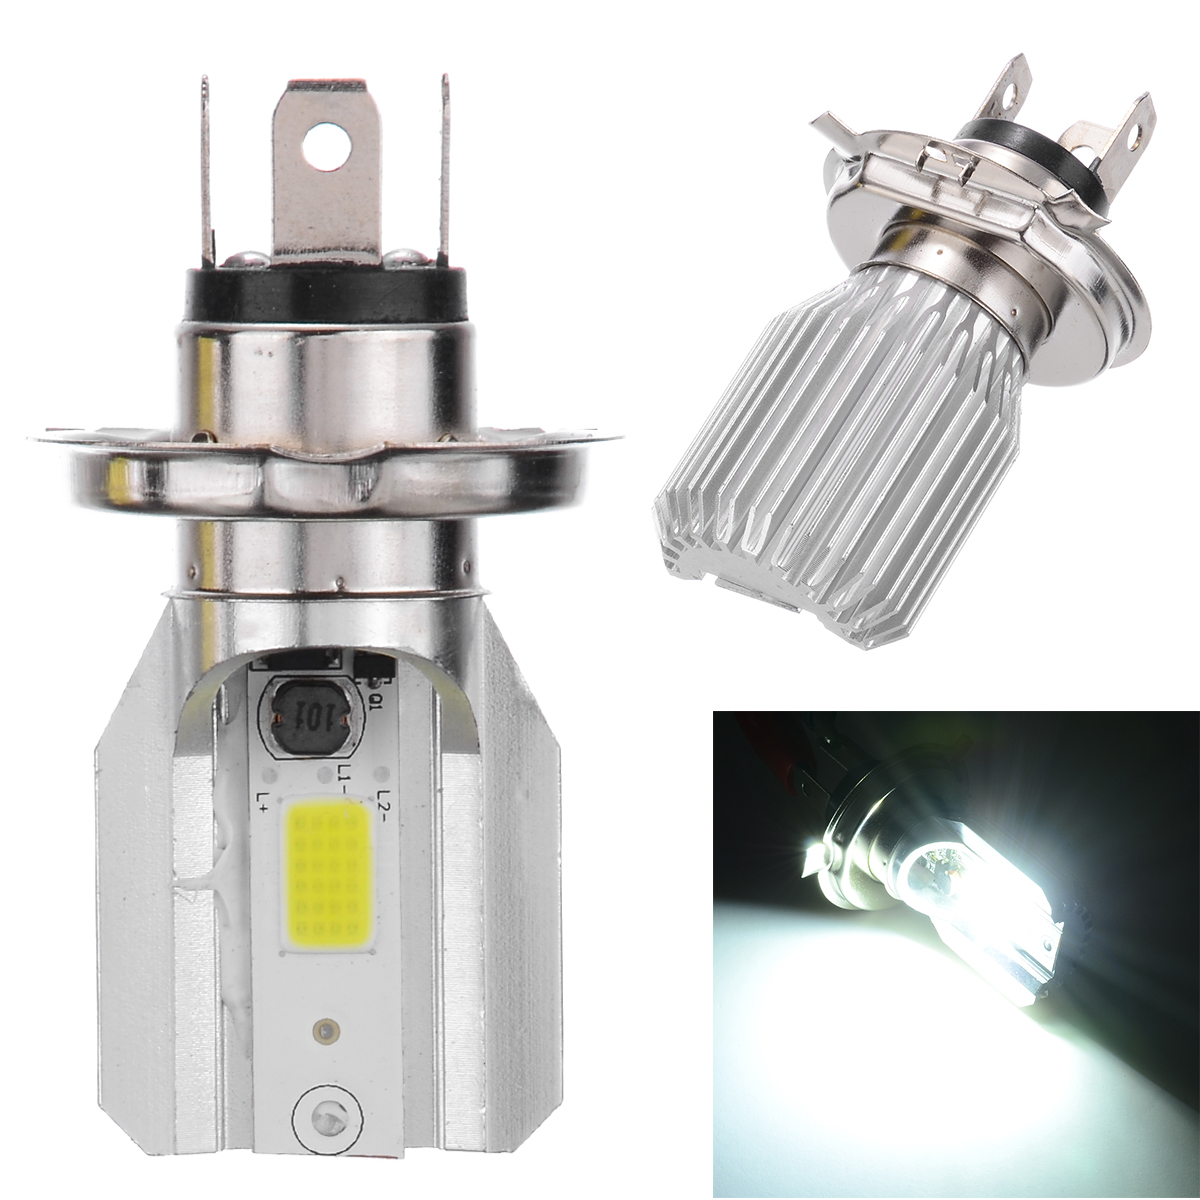 1pc DC12V H4 LED Motorcycle Motorbike Headlight Moto Fog Light Lamp Single sided Bulb 800 2000LM 6000K For Moped Scooter ATV